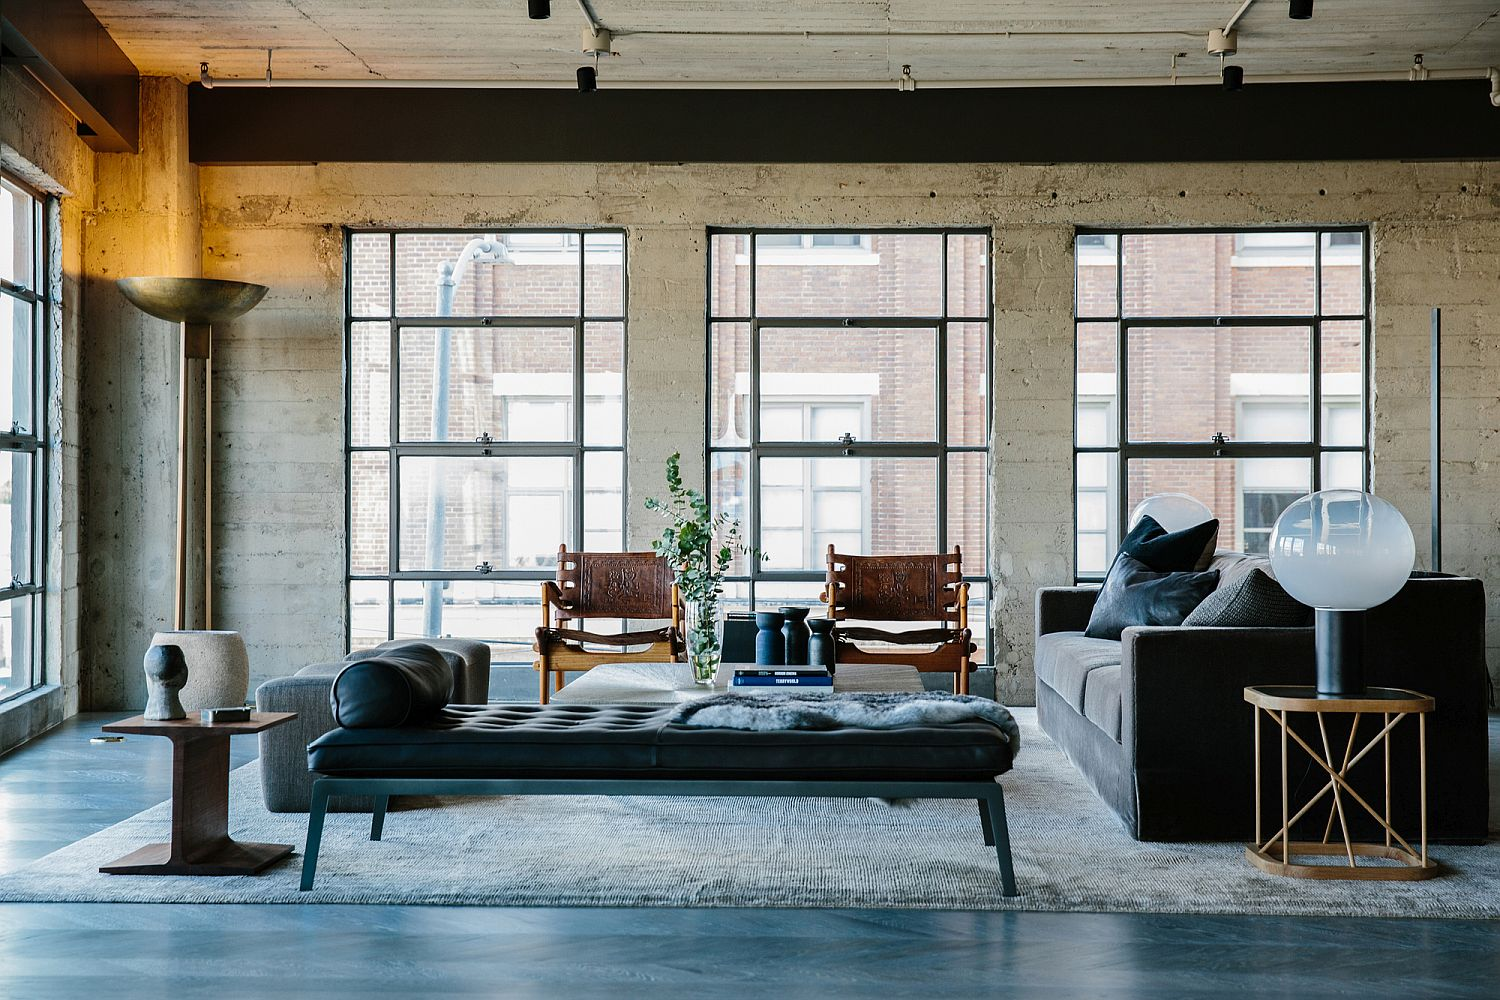 Exposed-concrete-walls-and-a-polished-floor-blend-in-beautifully-with-the-industrial-vibe-of-the-home